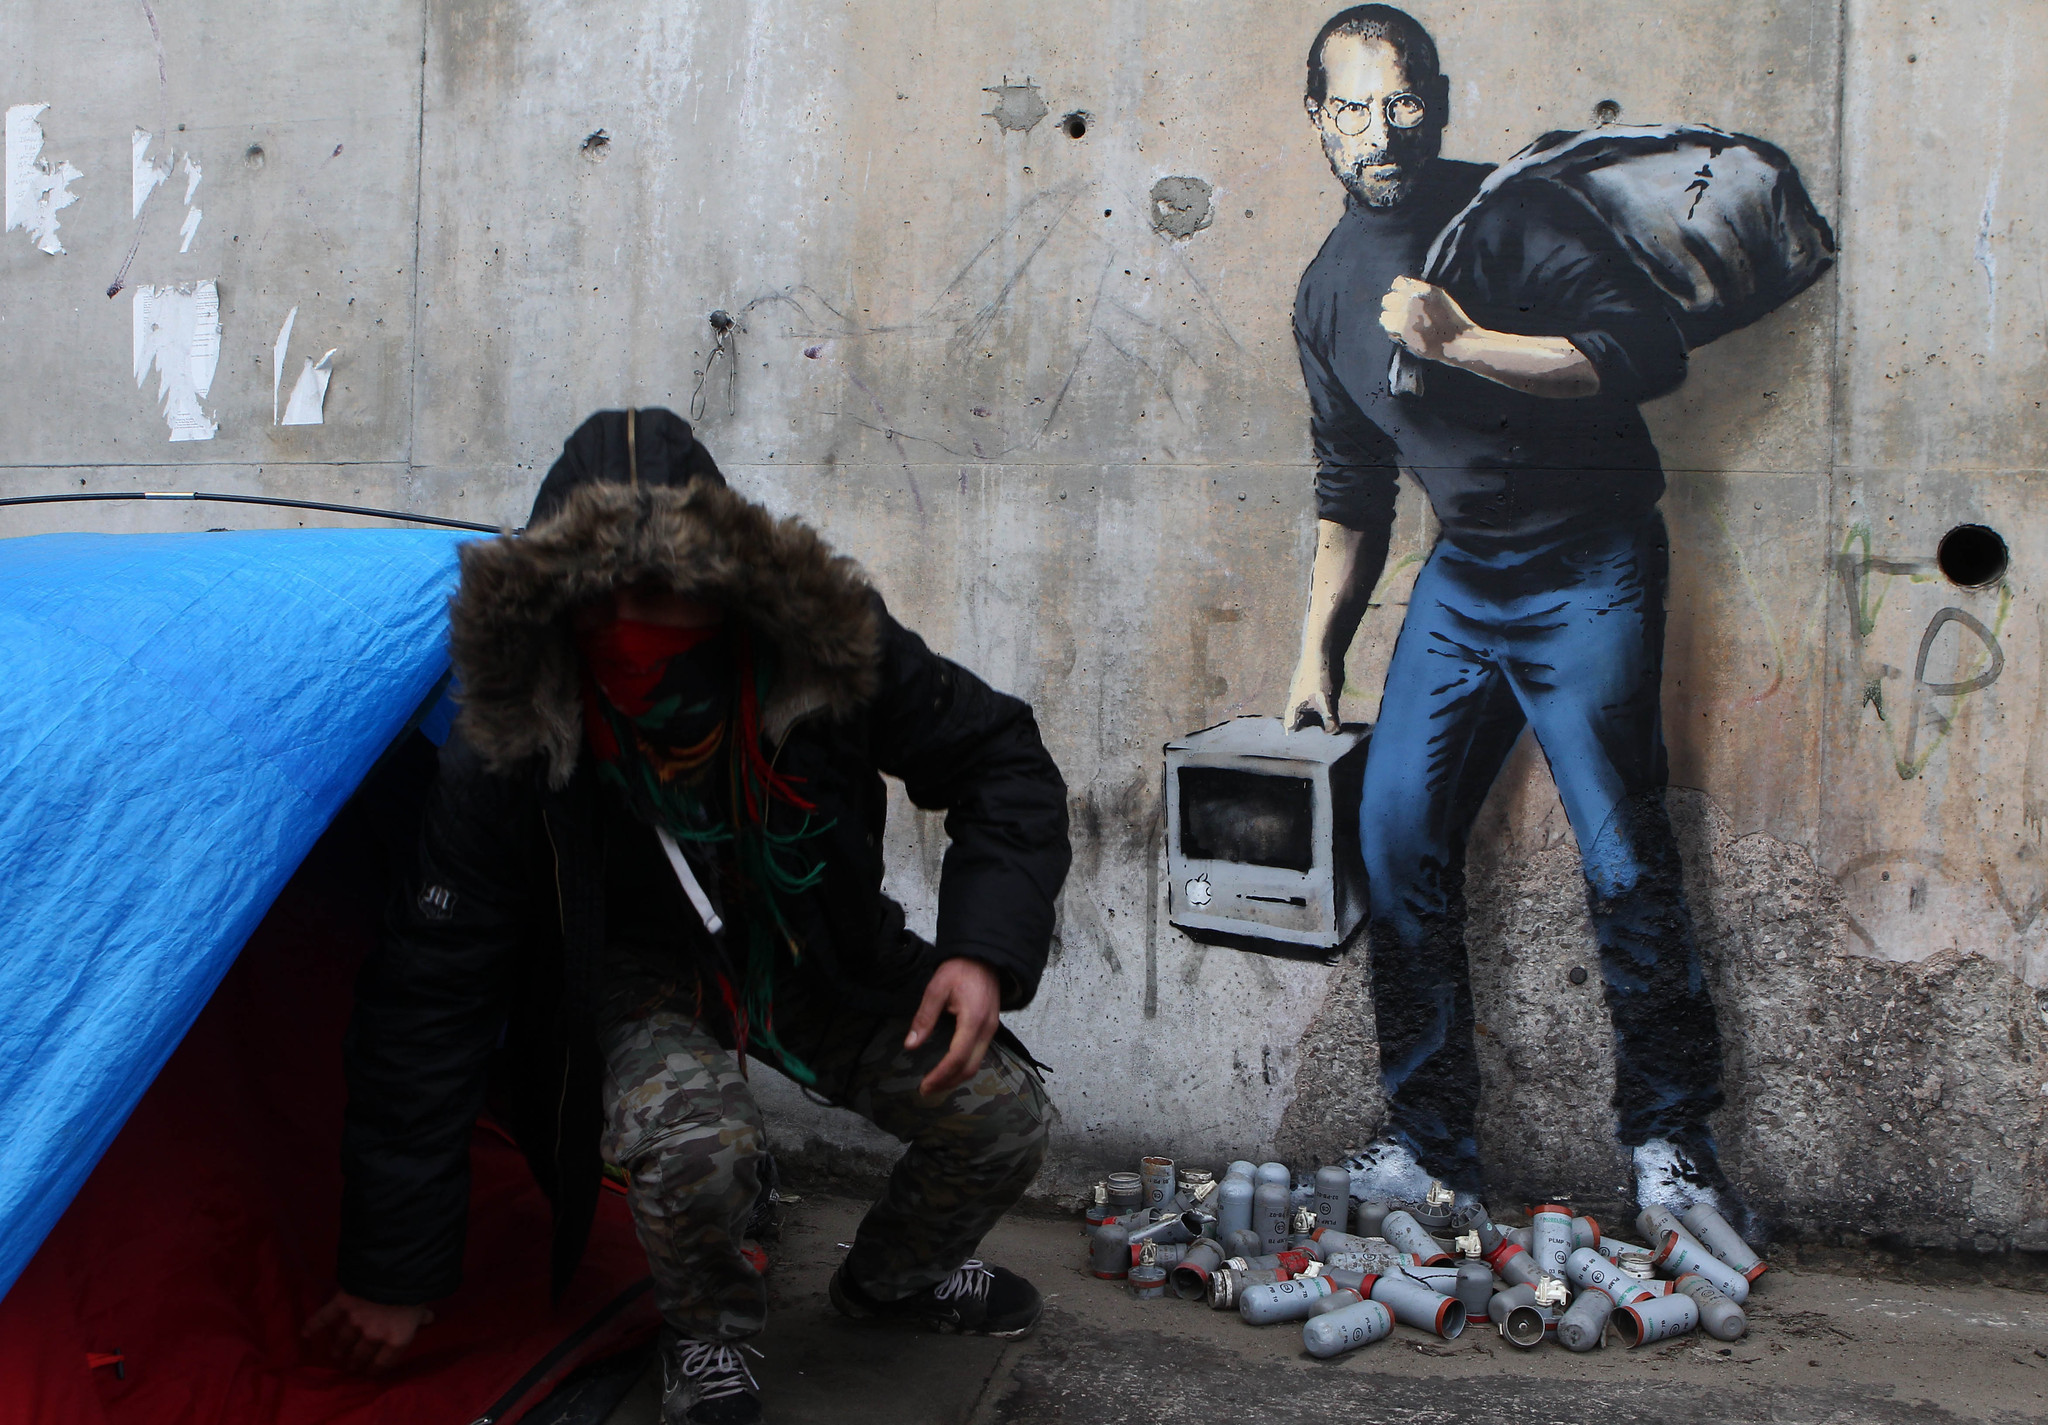 Wall Mural Stencils Banksy S Identity May Have Been Revealed Chicago Tribune